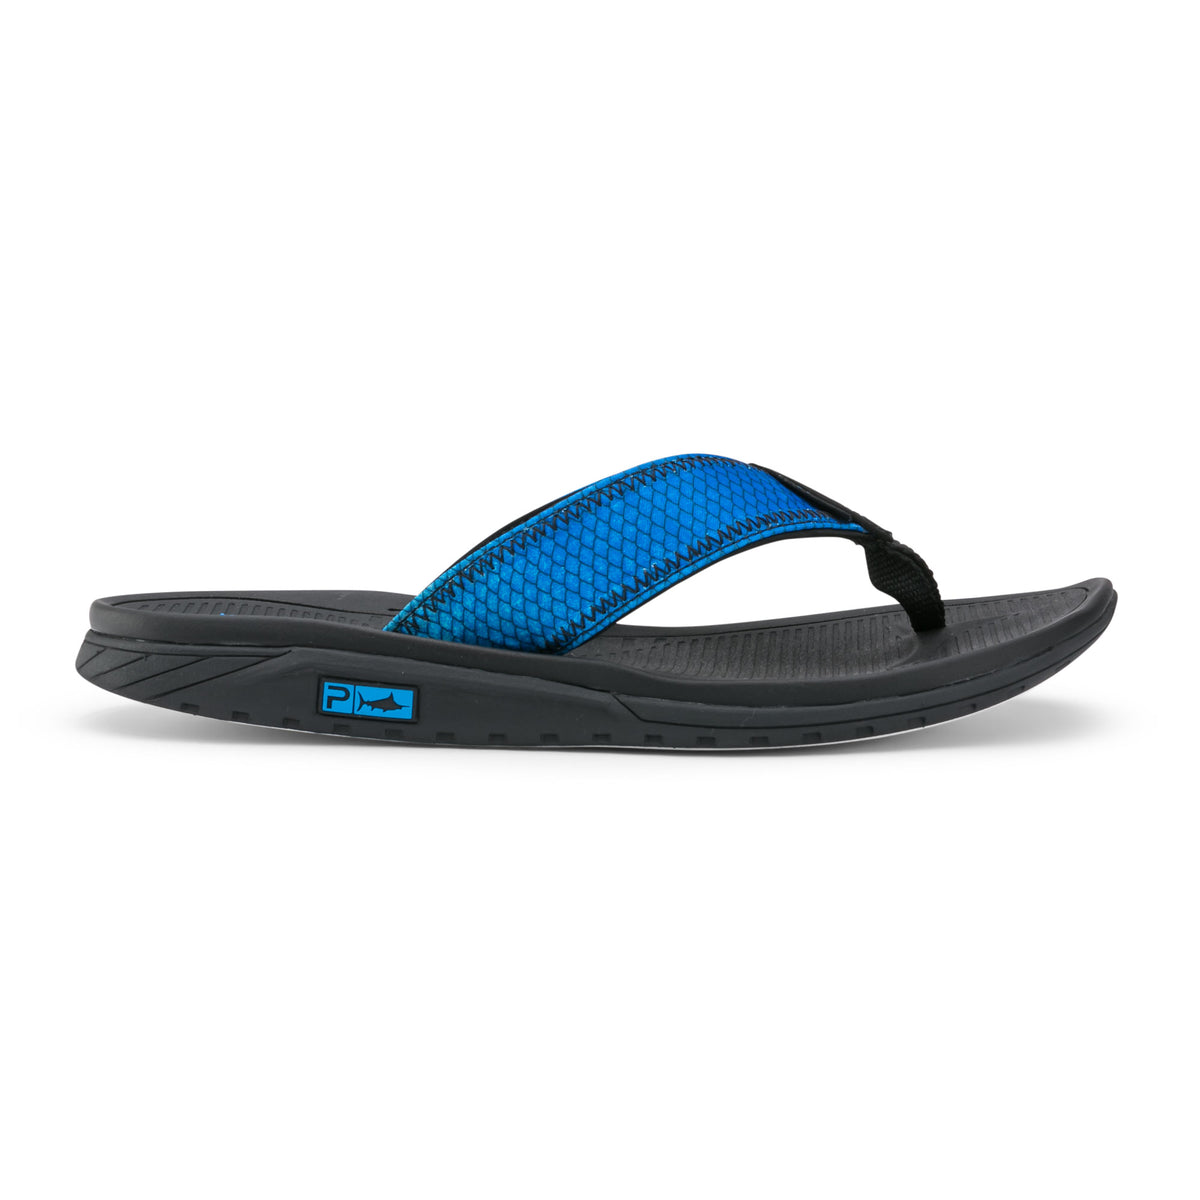 Offshore Fishing Sandals Big Image - 2